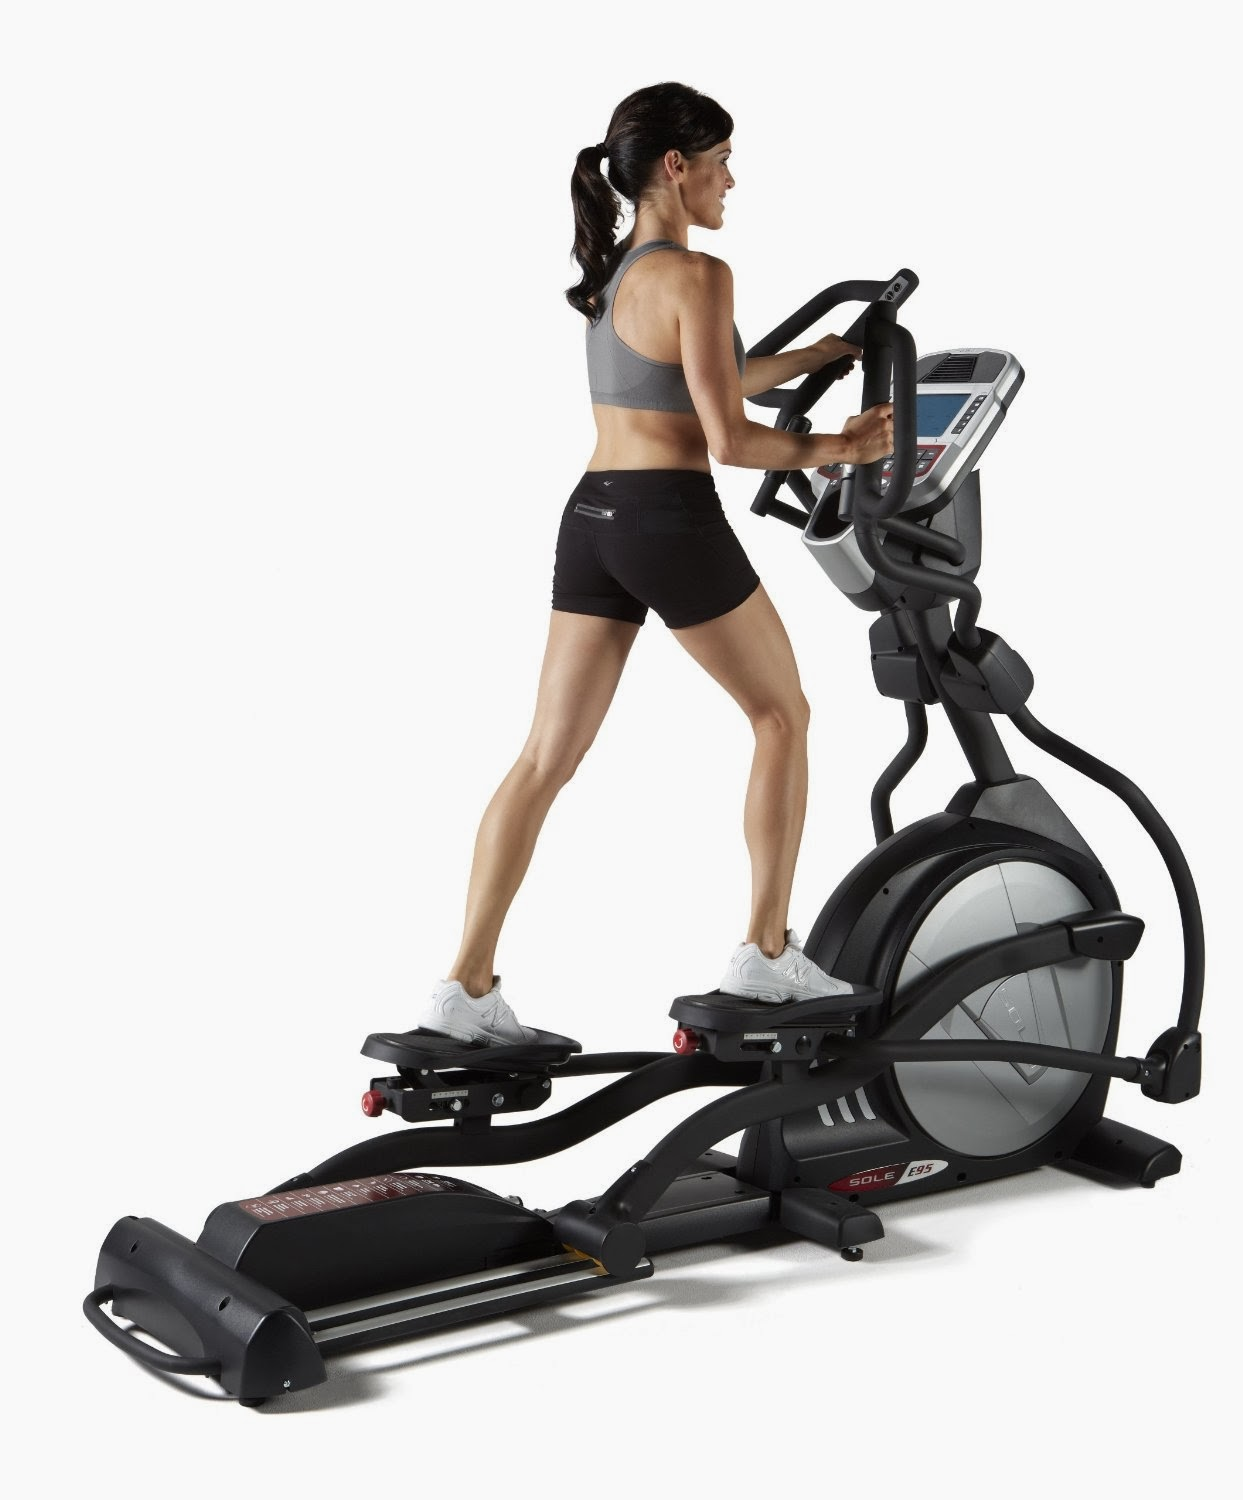 Sole E95 Elliptical Trainer Machine, compare features & differences with Schwinn 470